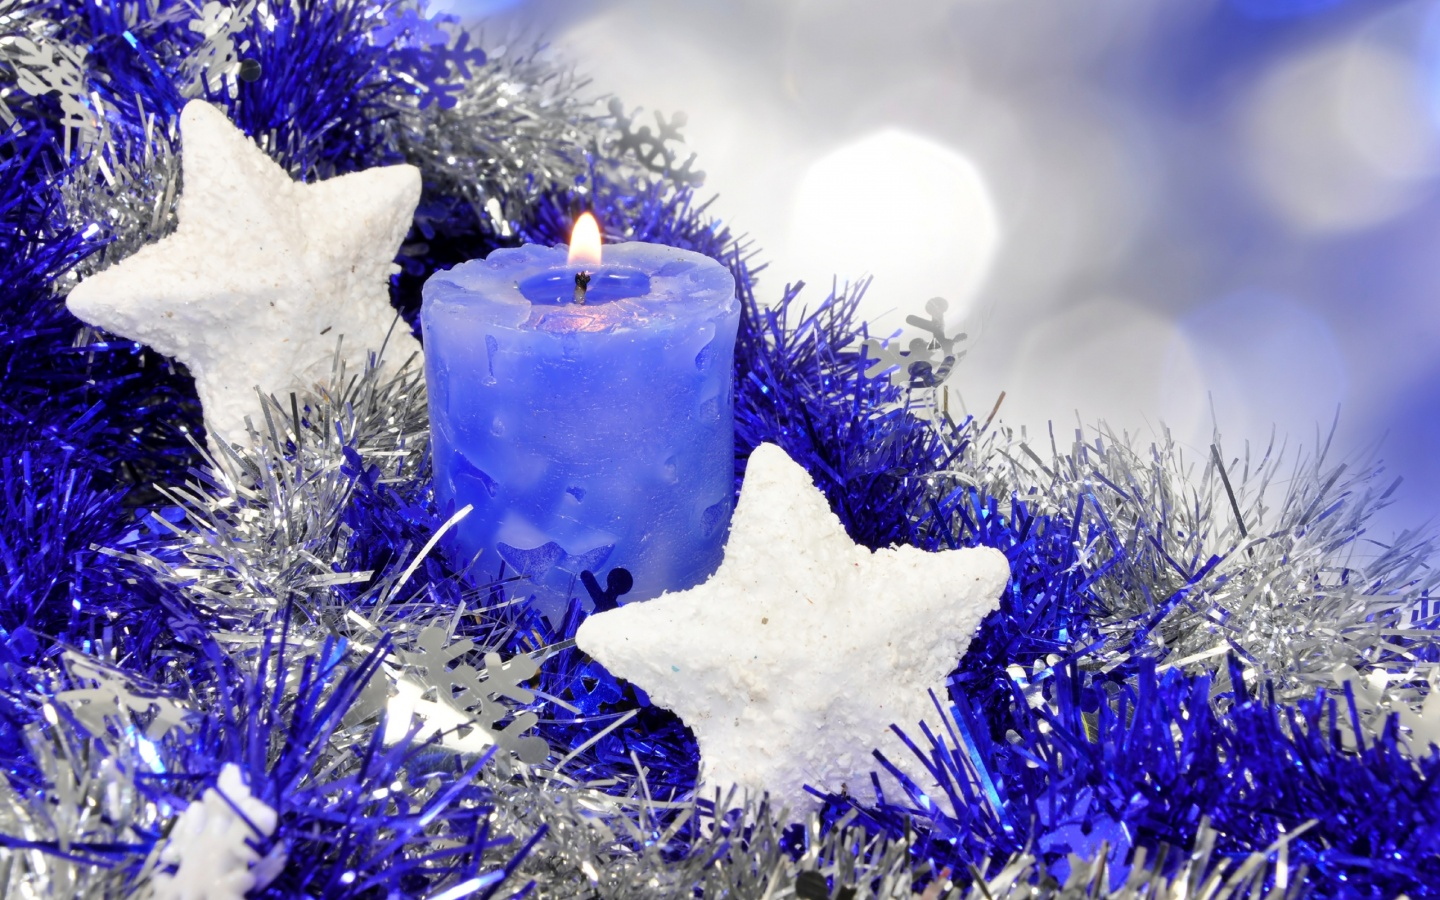 christmas candle wallpapers 31718 1440x900jpg 1440x900